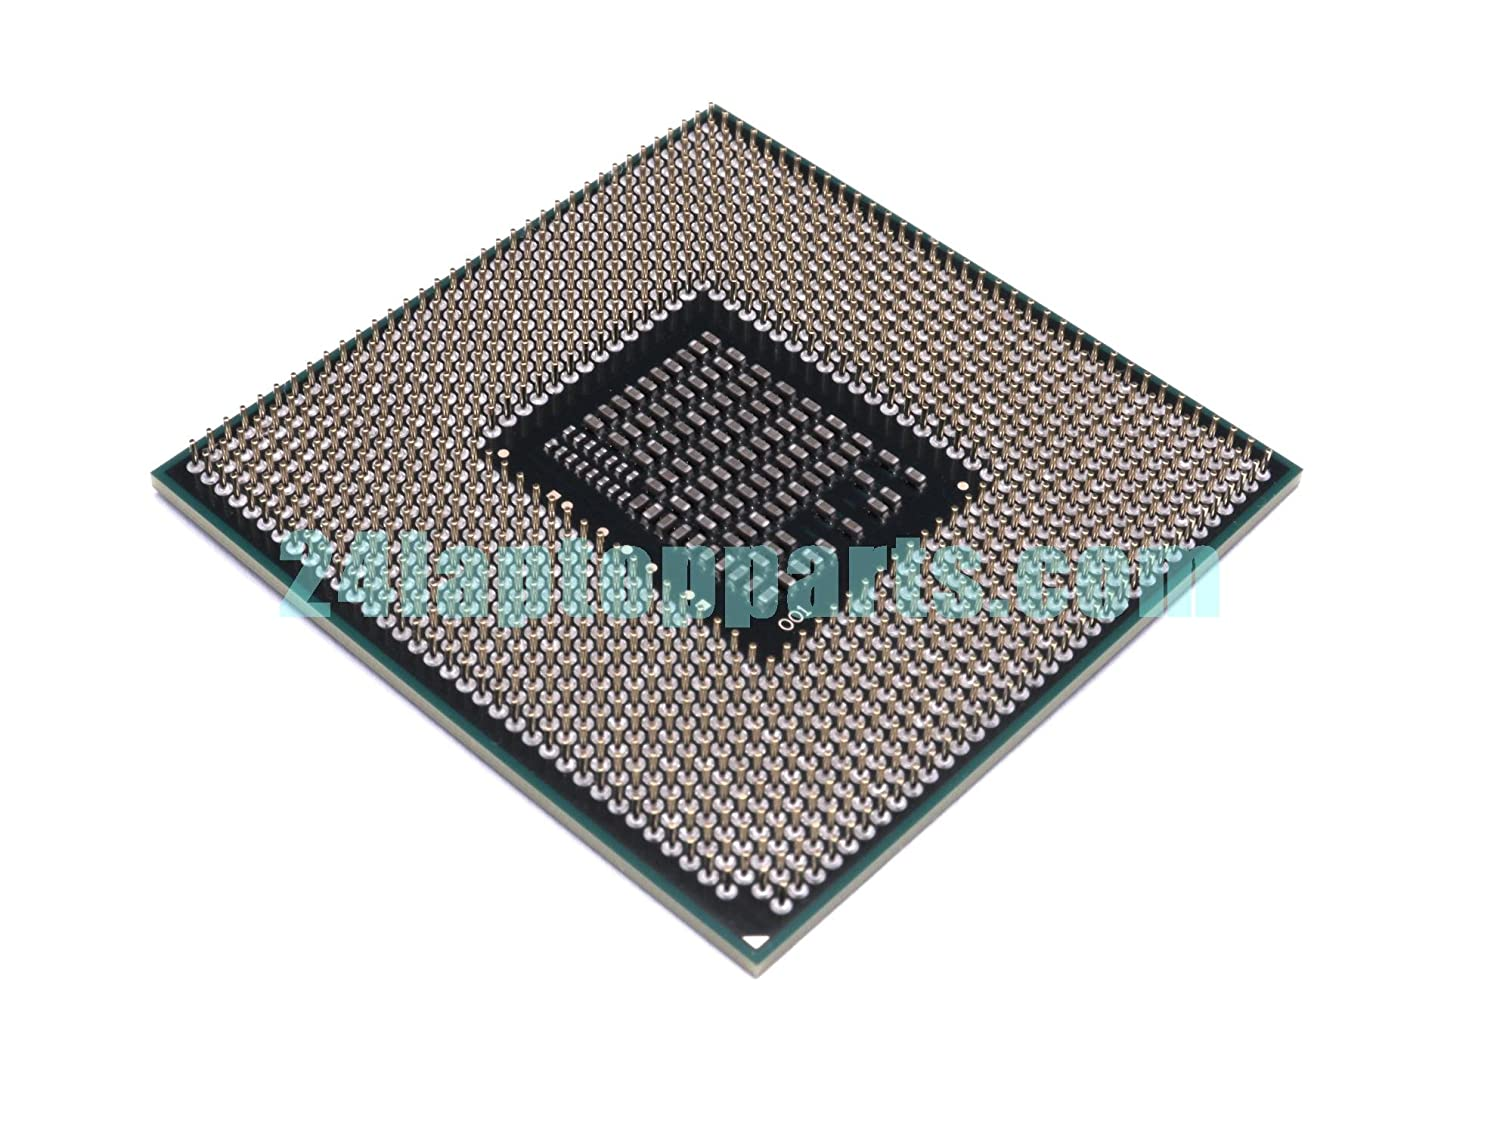 Intel Core i7-2620M SR03F 2.7GHz 4MB Dual-core Mobile CPU Processor Socket G2 988-pin